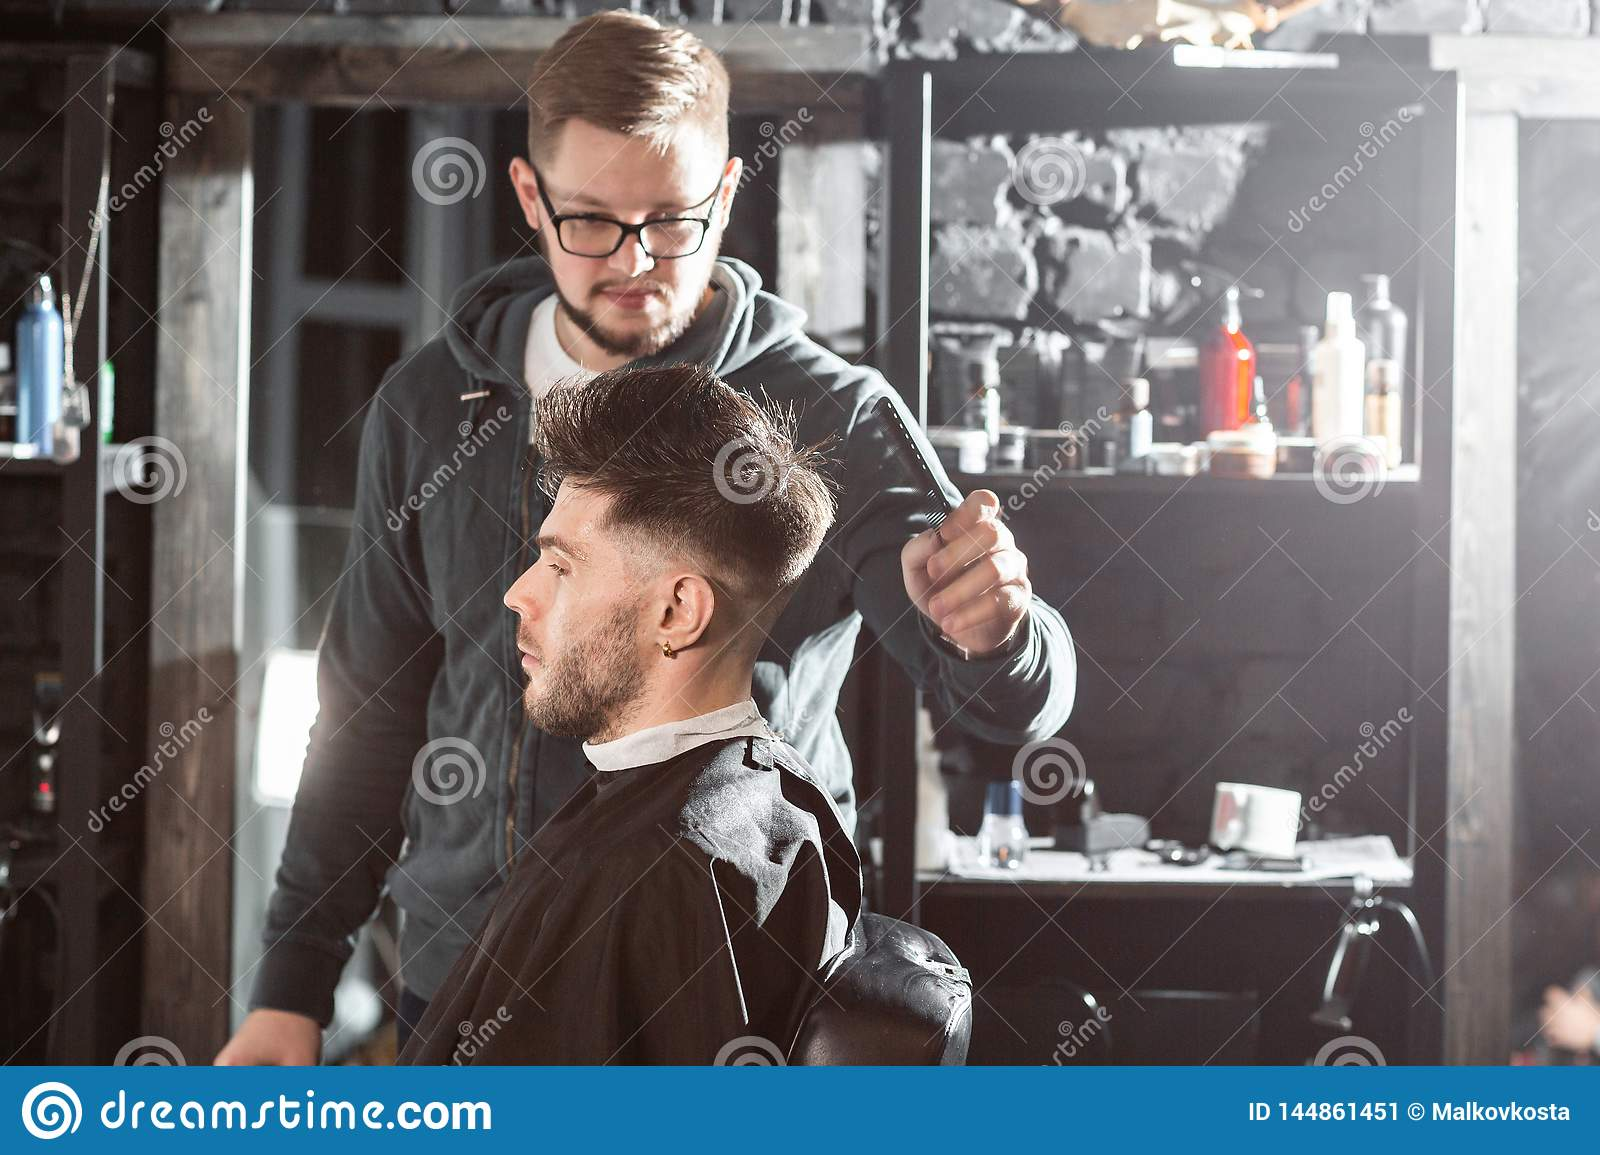 Hair cutting with metal scissors. Master cuts hair and beard of men in the barbershop, hairdresser makes hairstyle for a